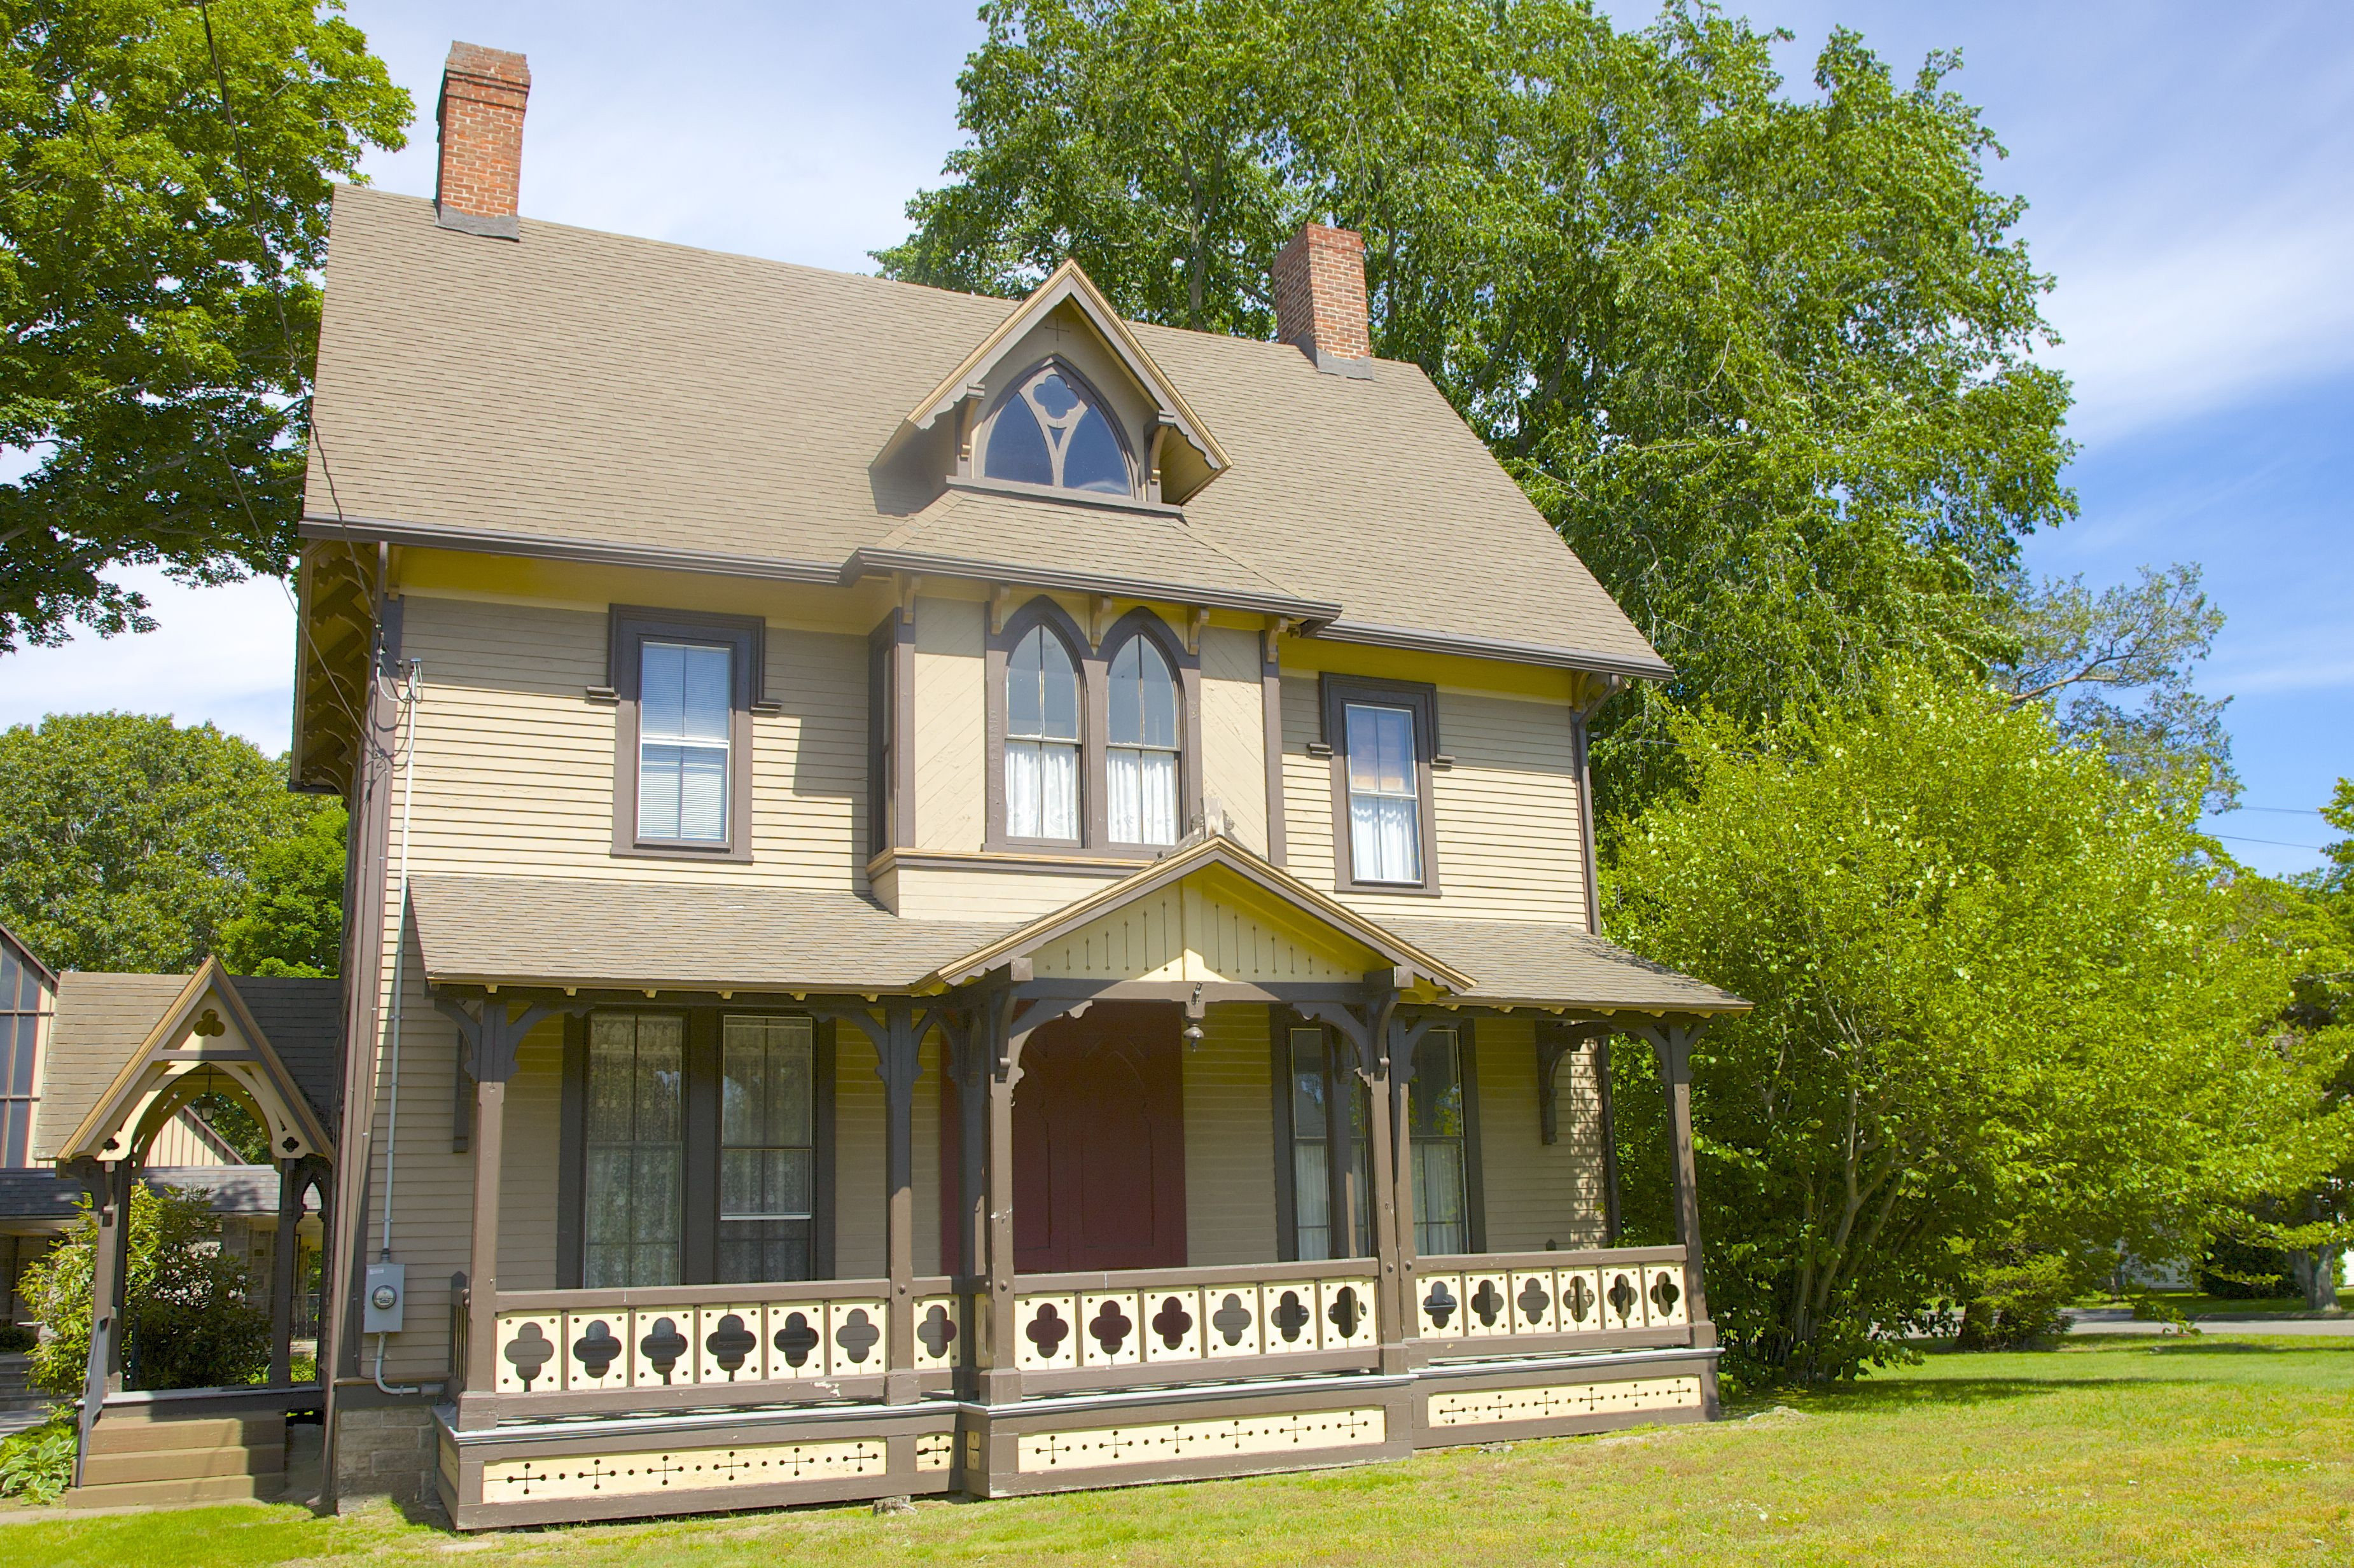 Gothic Revival Rectory c. 1873 in Old Saybrook, Connecticut